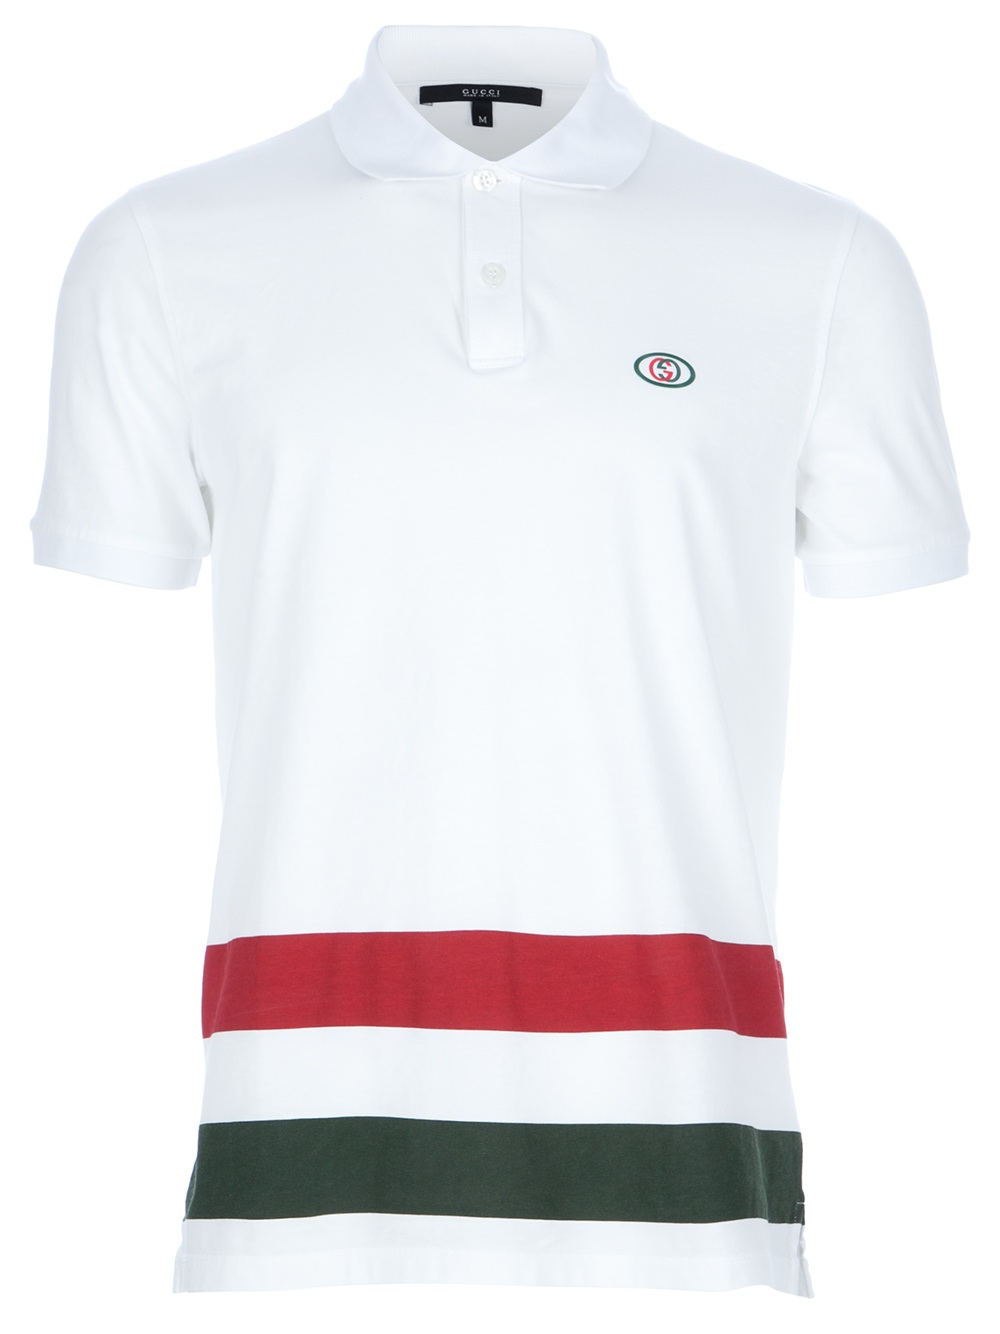 7ae8a453c42 Gucci Polo Shirts